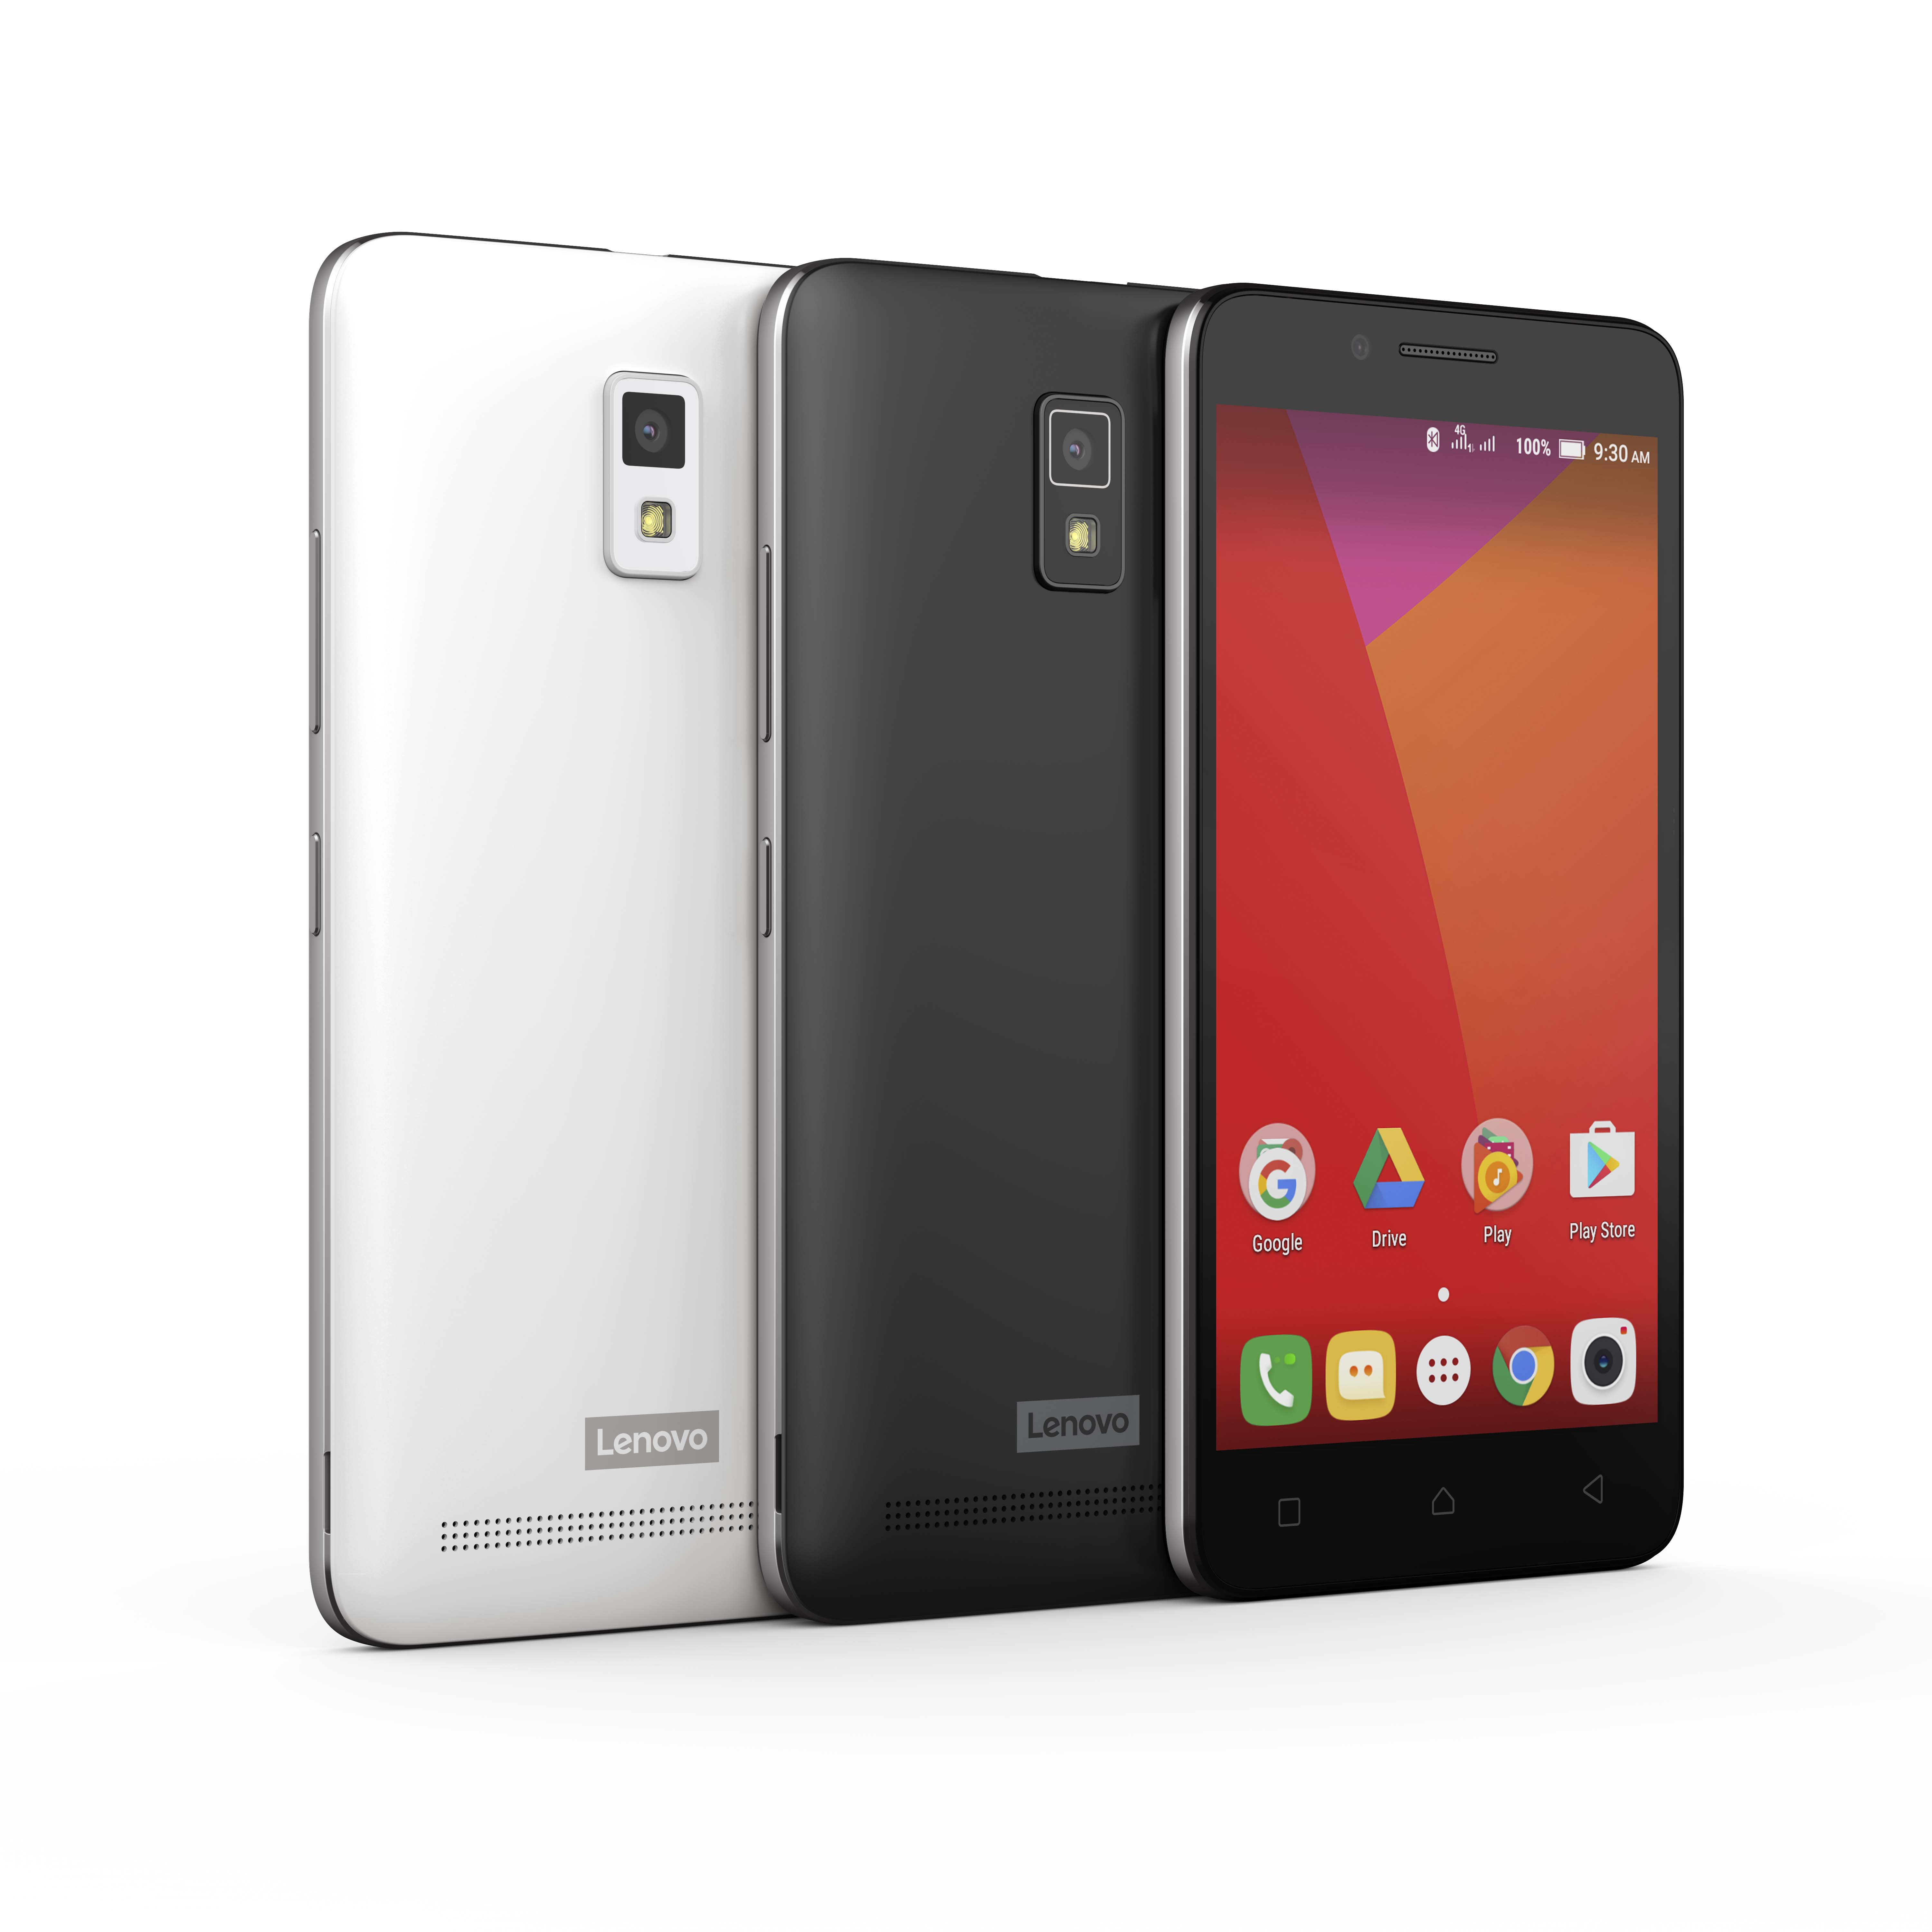 Lenovo VIBE A6600 Now FREE in Globe's MyLifestyle Plan 599